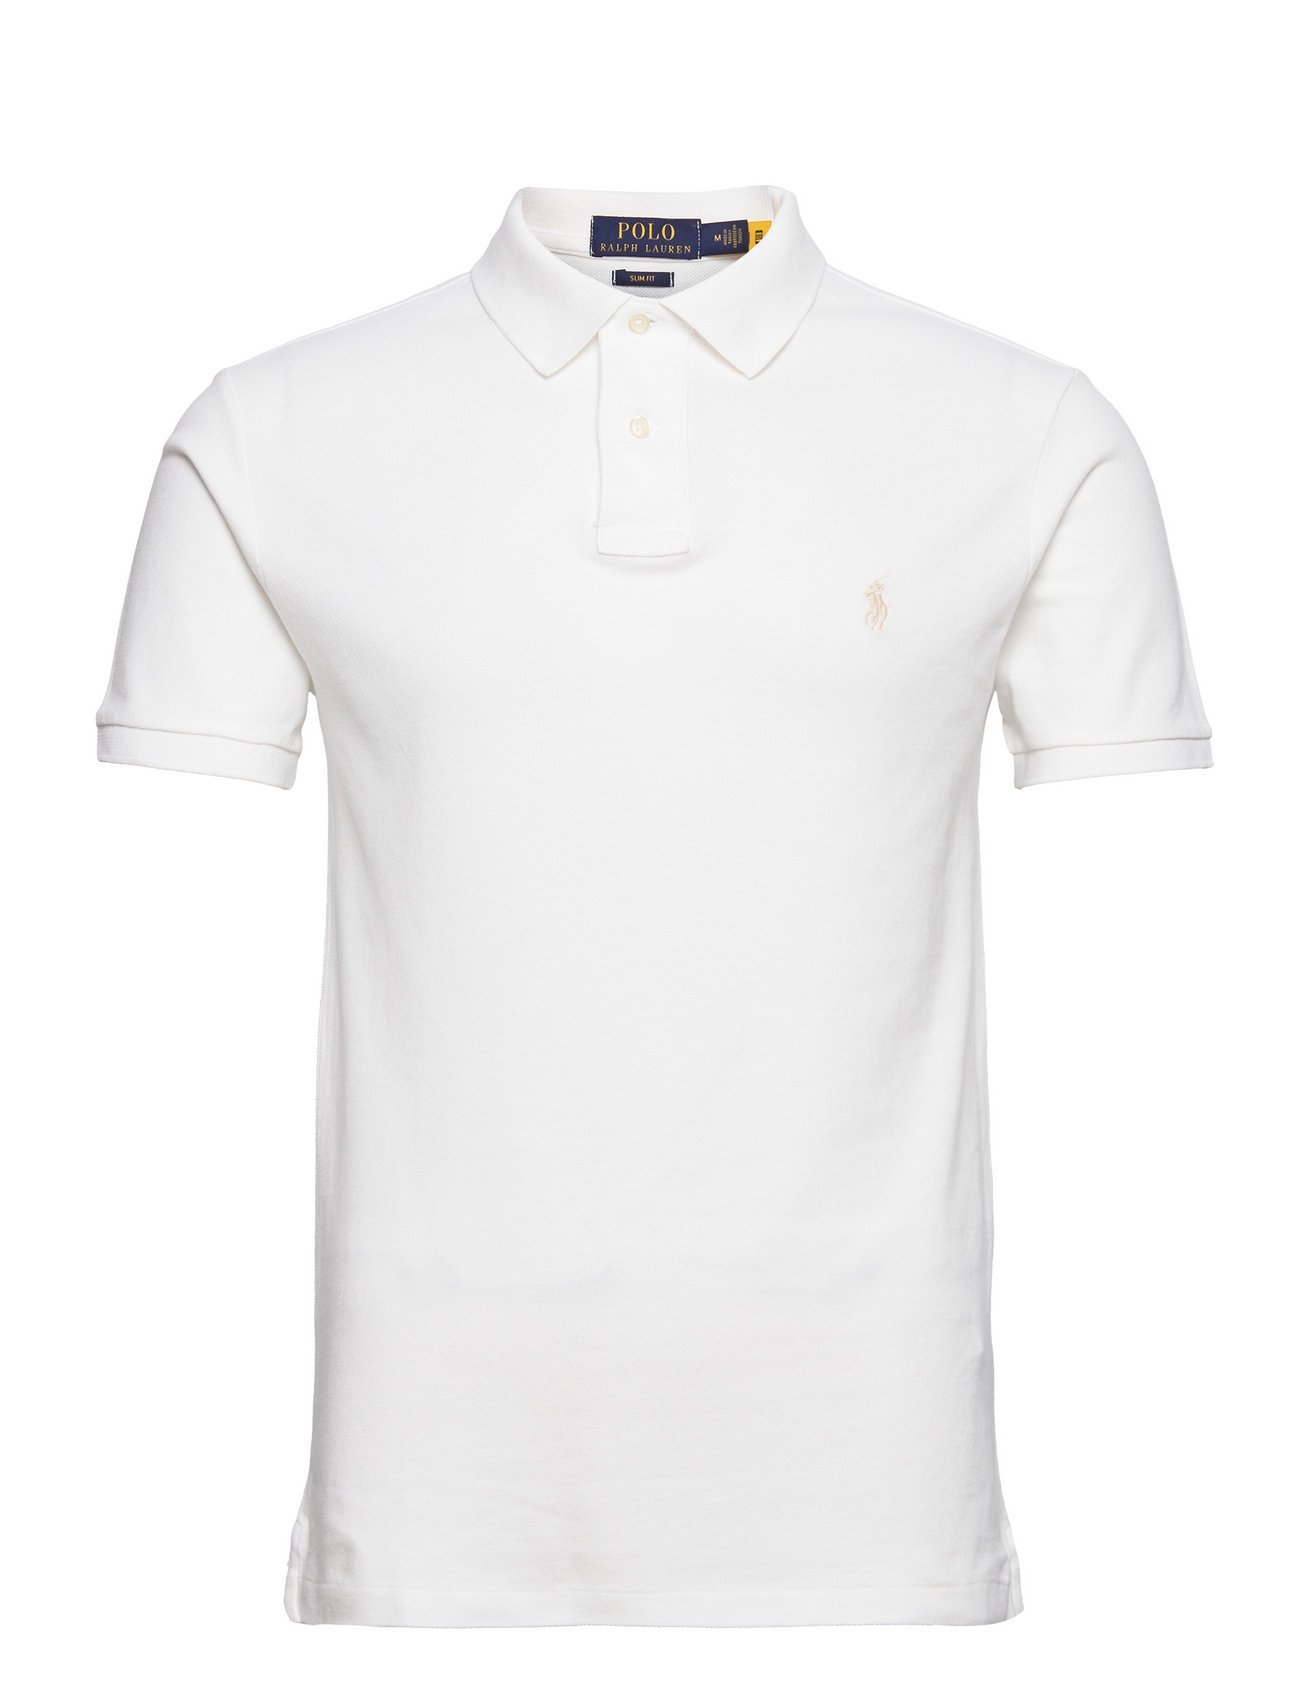 Polo Ralph Lauren Slim Fit Mesh Polo Shirt - NEVIS